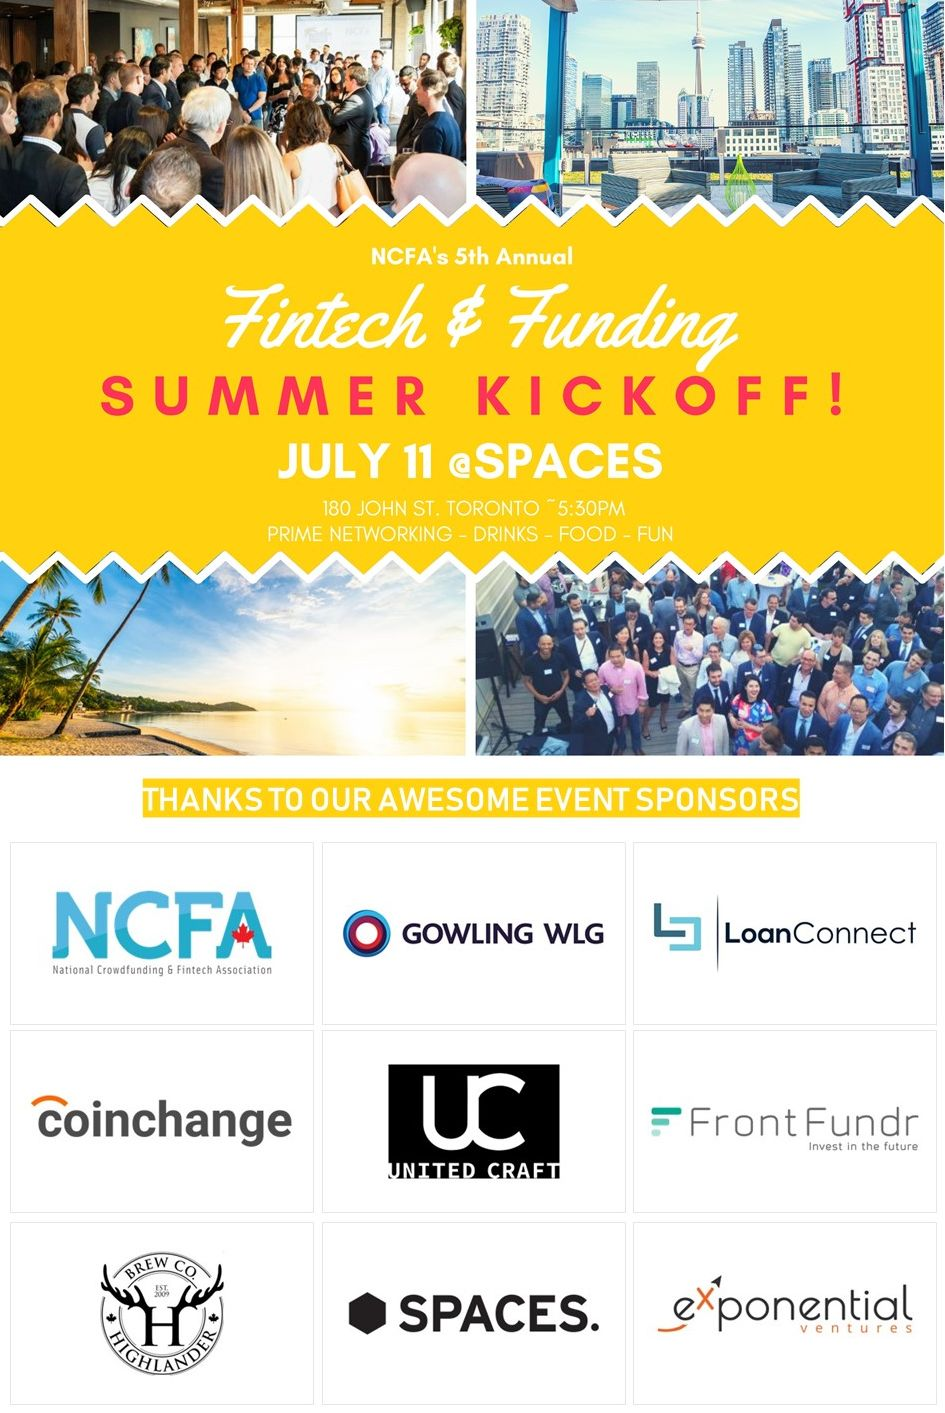 NCFA Summer Kickoff Event Jul 11 v3 - Fintech Fridays Ep33:  Indexing Consumer Loans and Financial Literacy with Phillip Postrehovsky